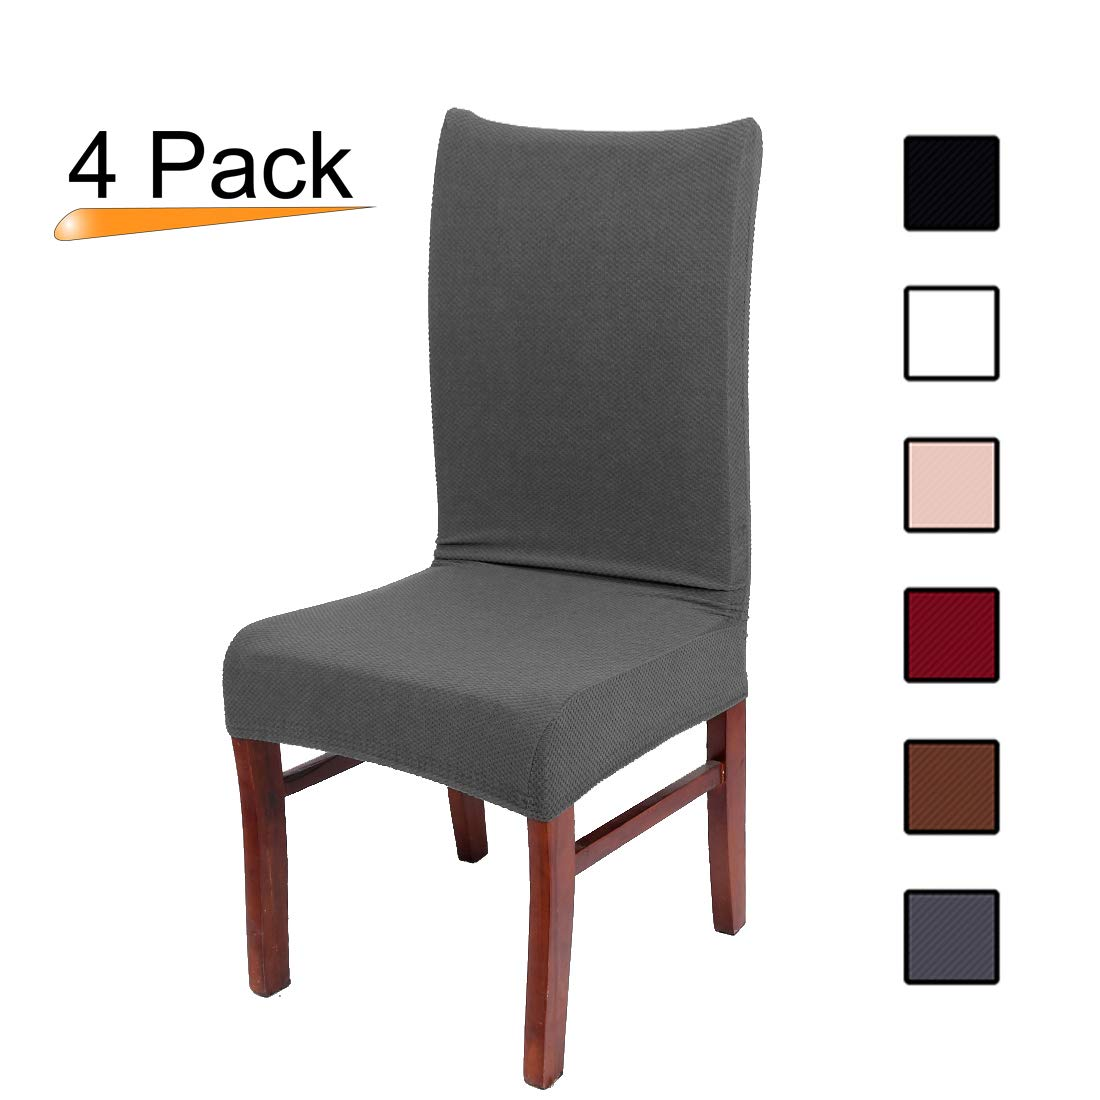 Colorxy Stretch Dining Room Chair Slipcovers - Spandex Fabric Removable Chair Protector Jacquard knitted Home Decor Set of 4, Grey